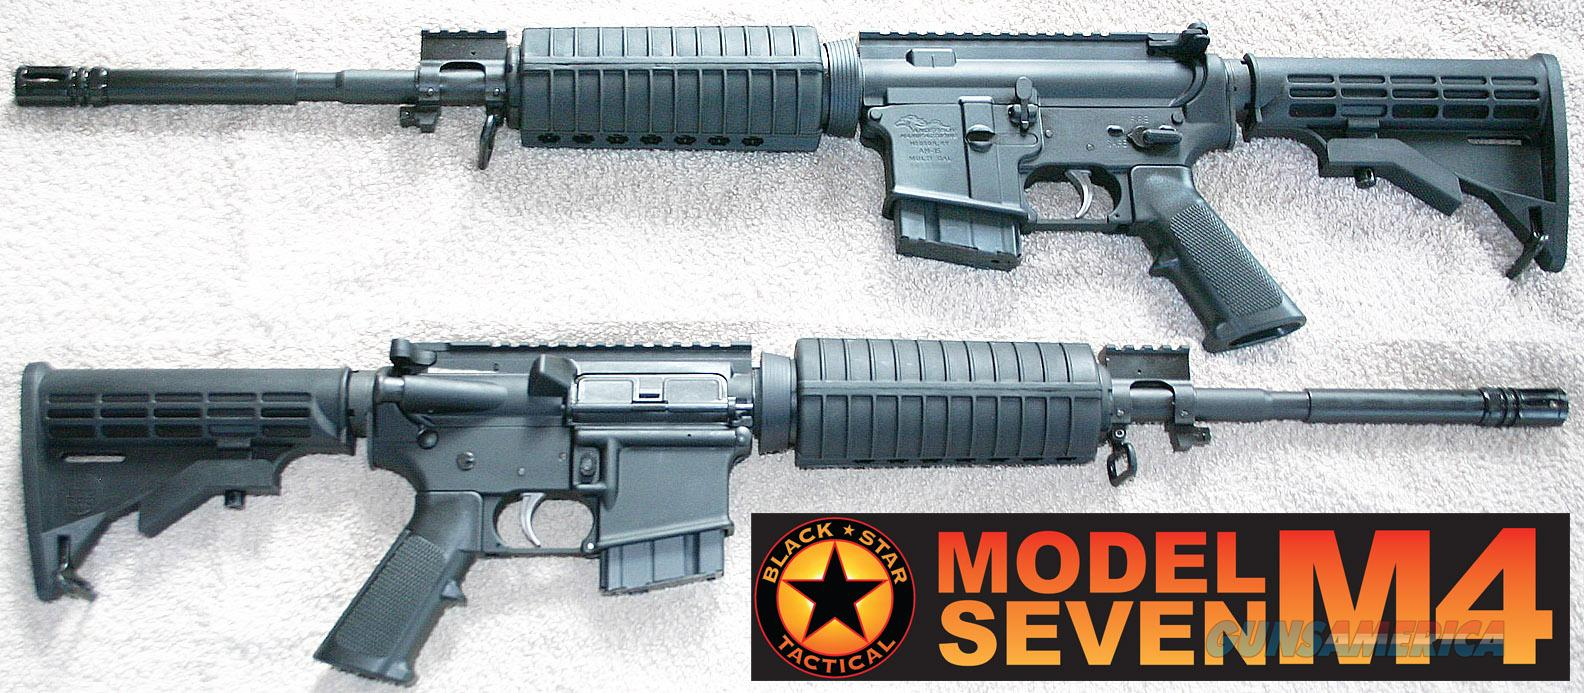 NEW ANDERSON MFG 7.62X39MM AR/M4 CARBINE - CHROME LINED 1/9.5 BBL  Guns > Rifles > A Misc Rifles